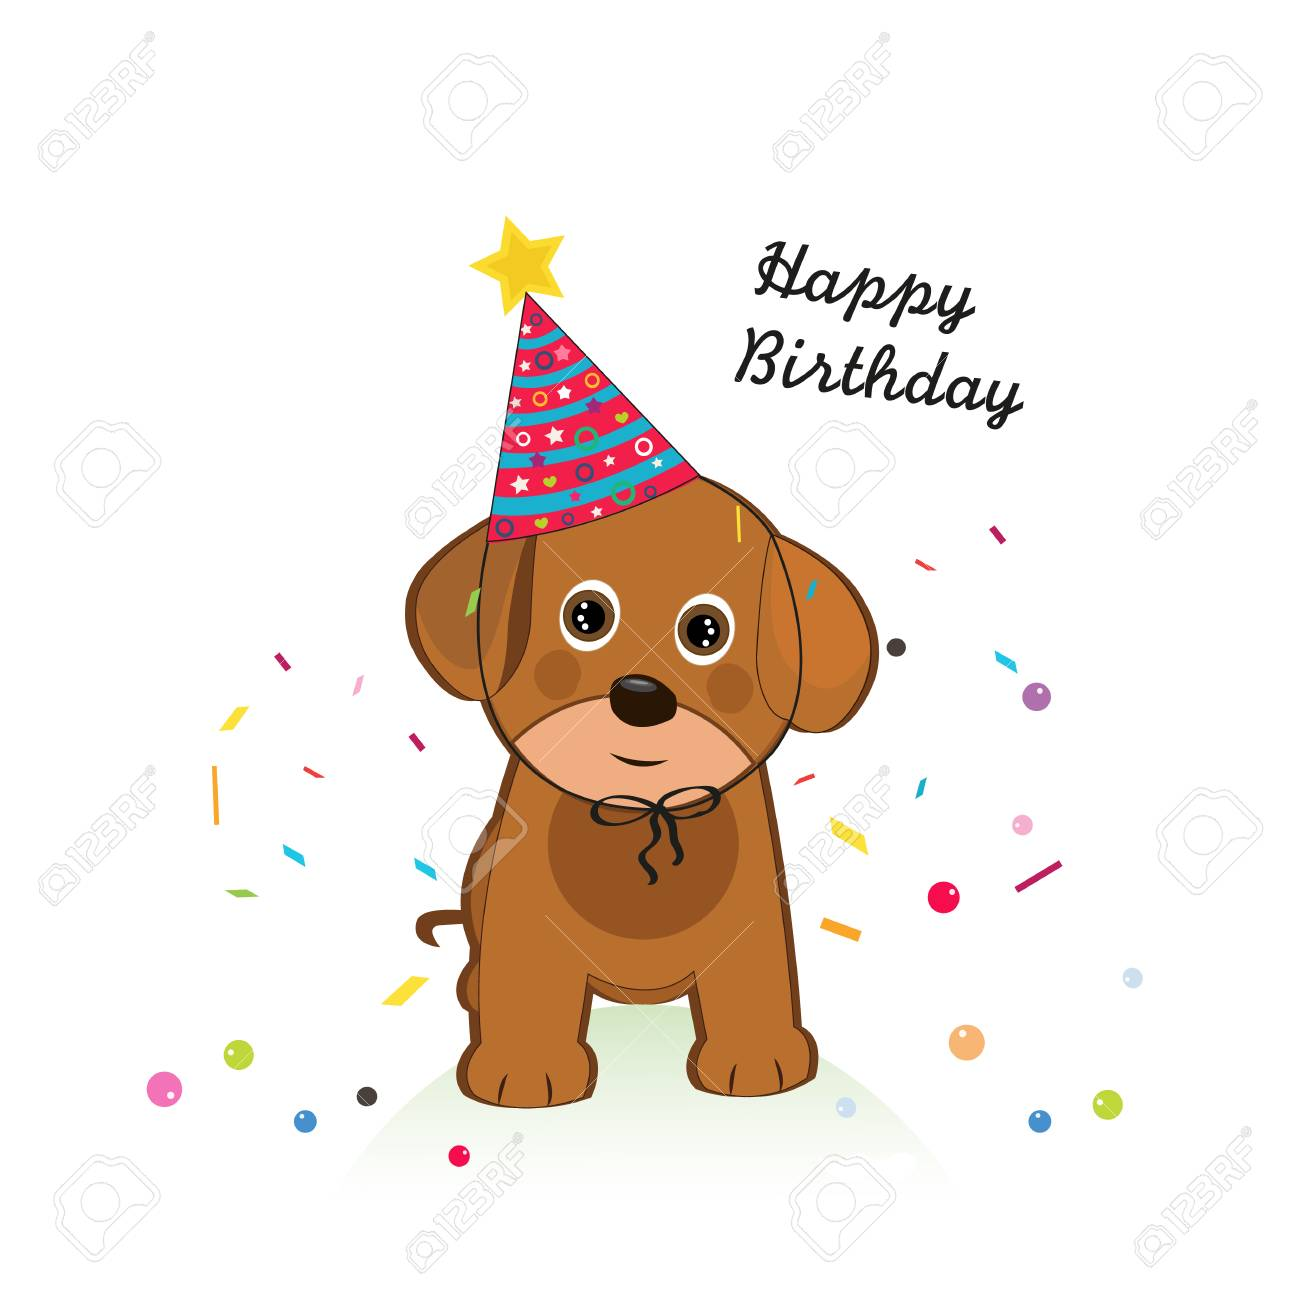 Dog With Balloon And Confetti Happy Birthday Greeting Card Royalty Free Cliparts Vectors And Stock Illustration Image 112532584